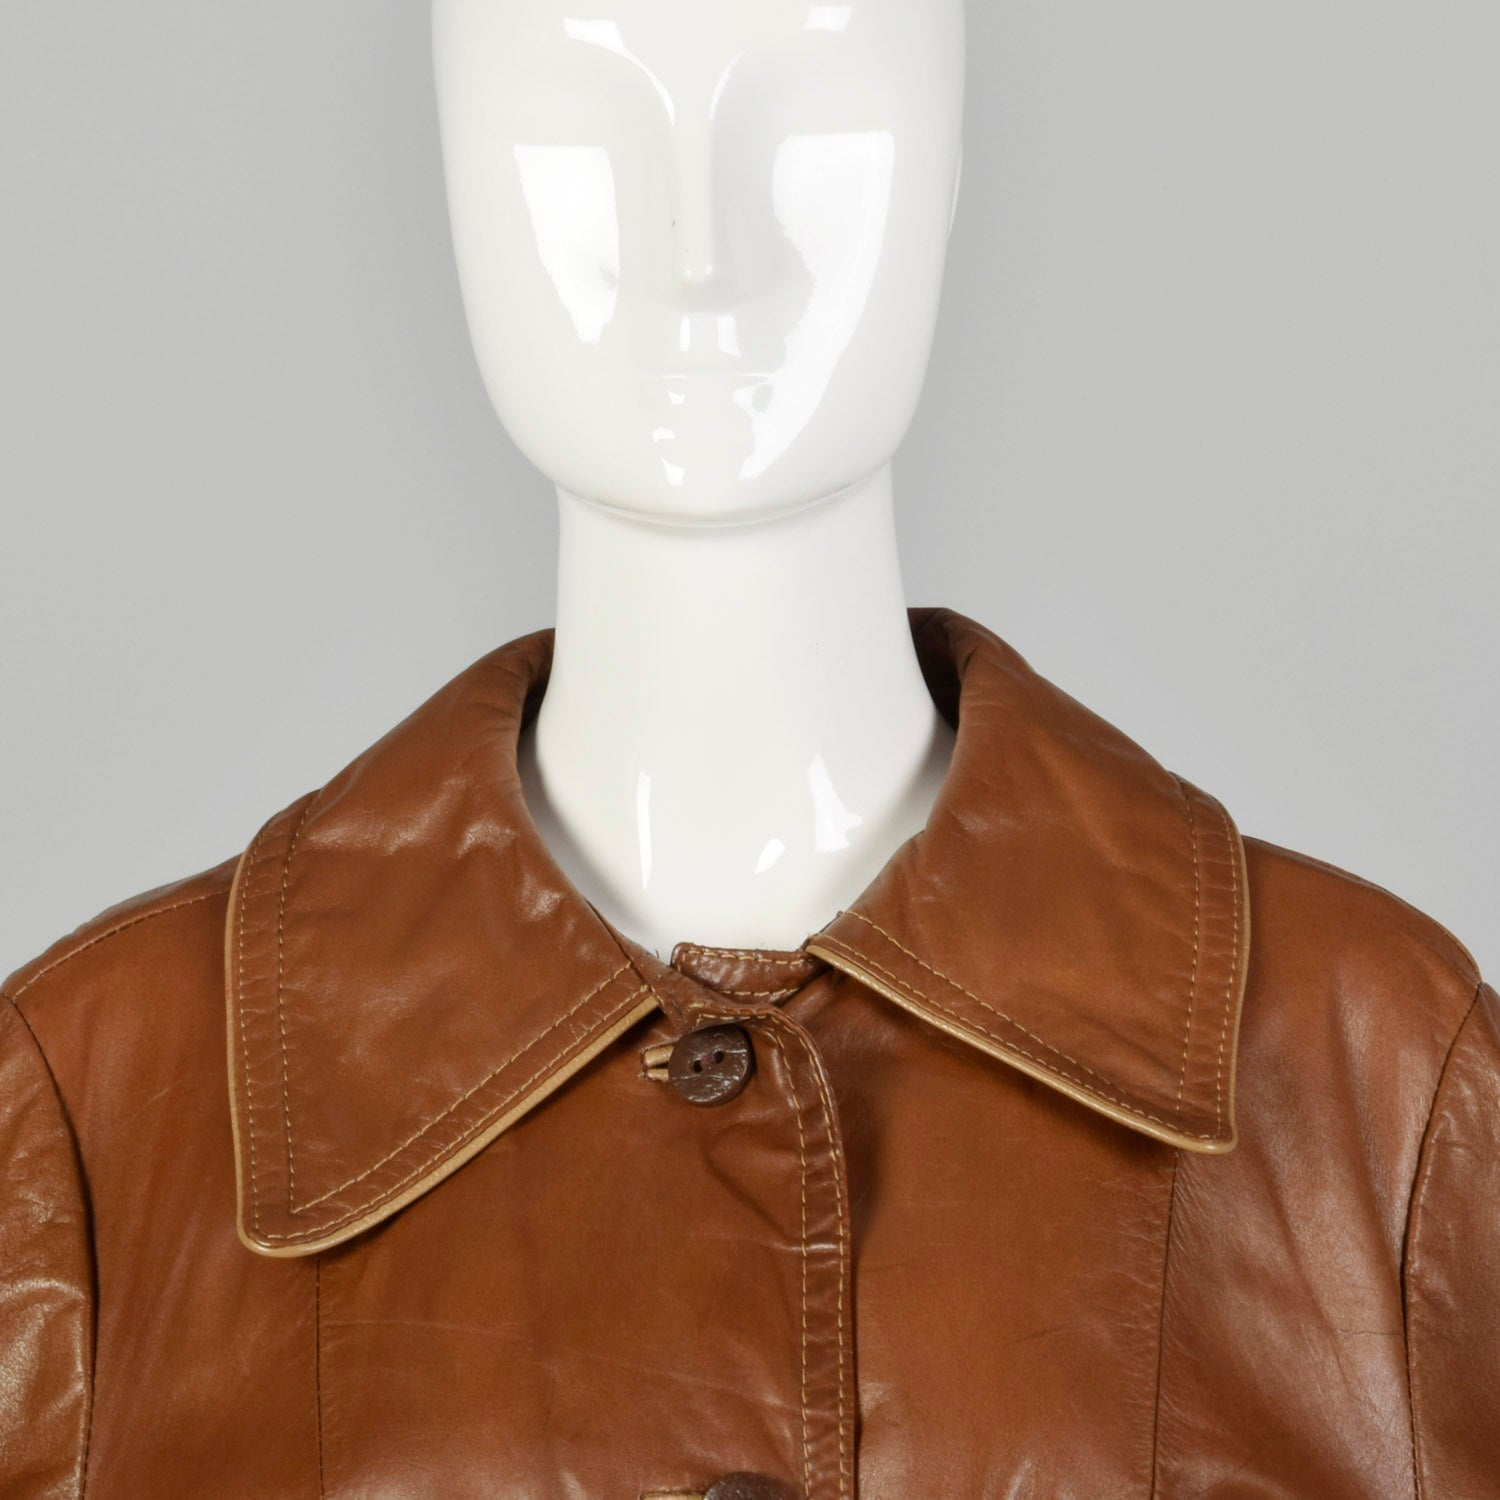 Large 1970s Brown Leather Trench Coat Wide Collar with Great Details